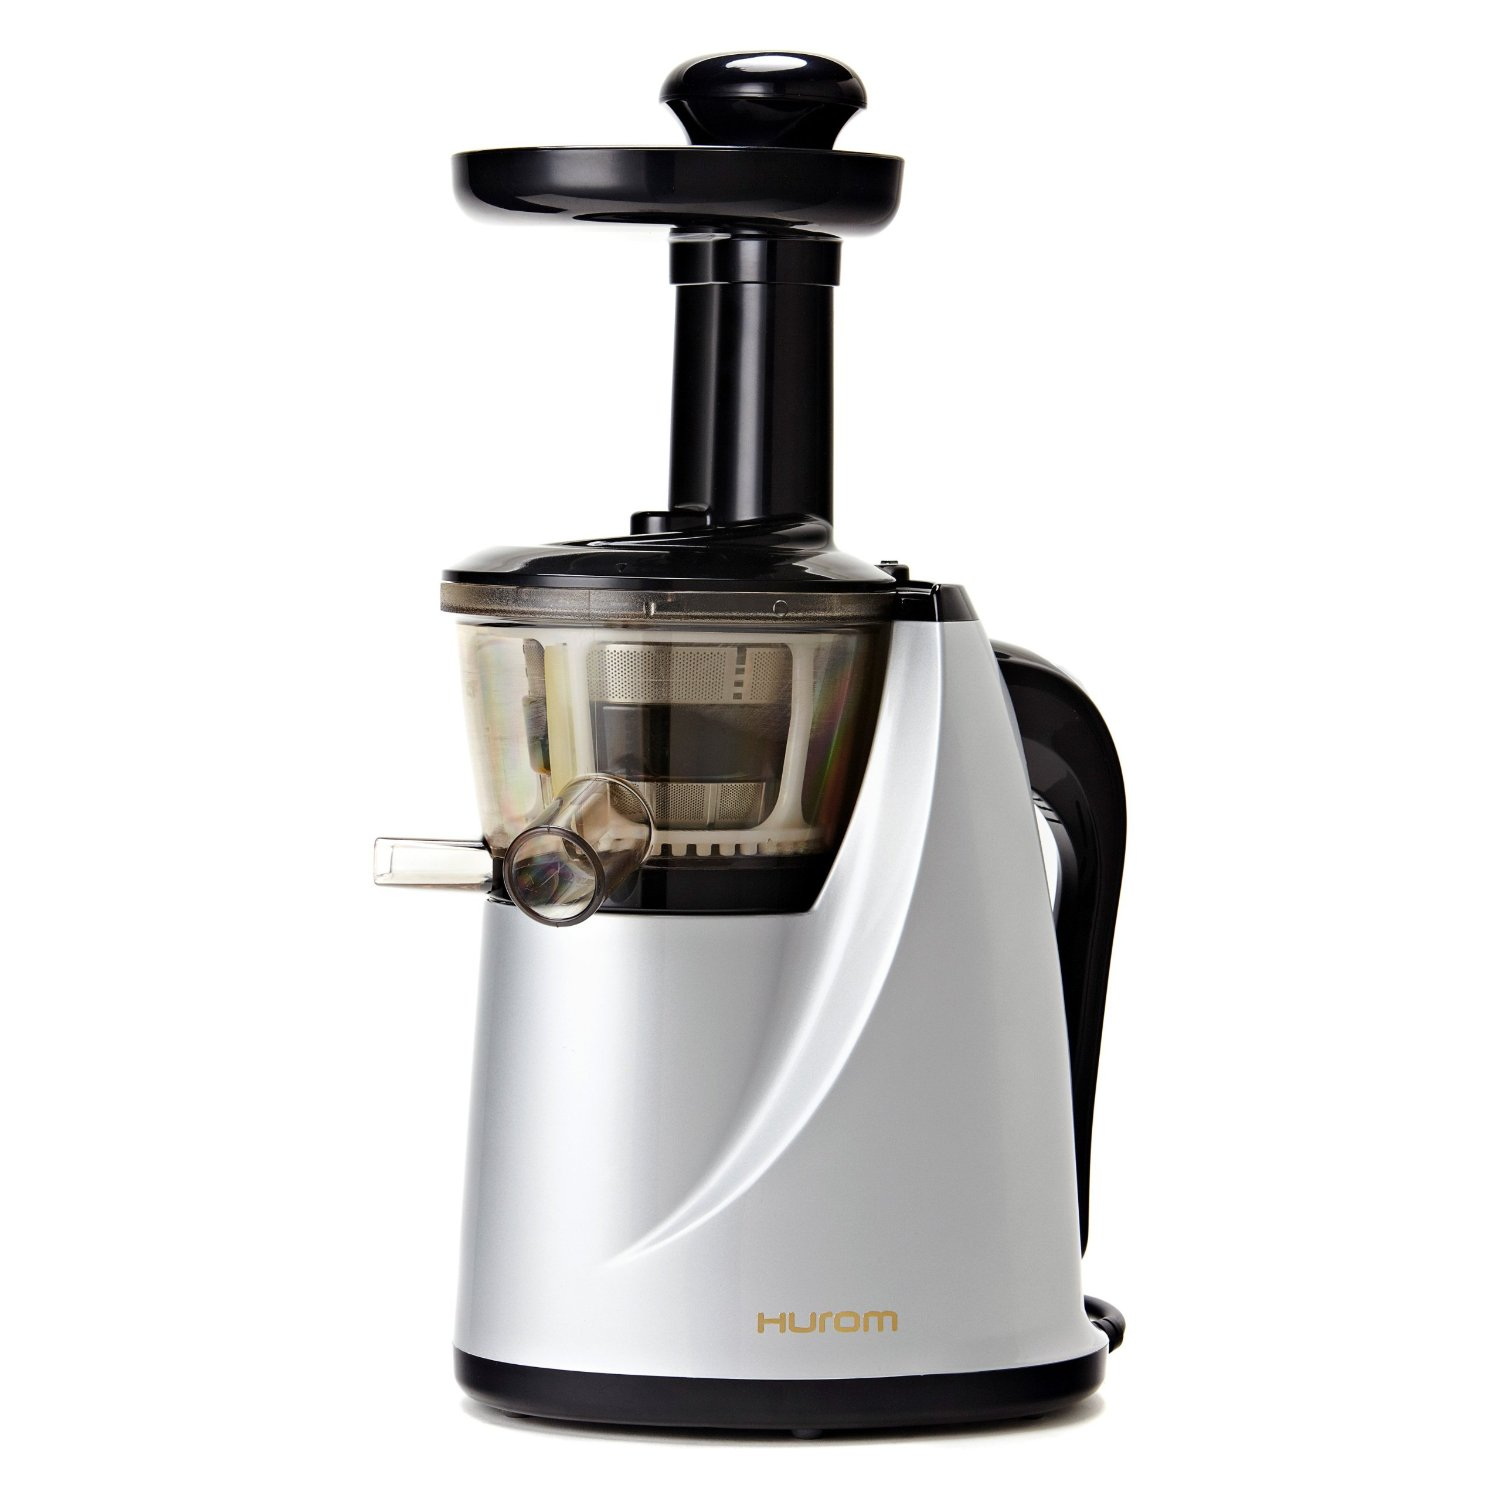 Homemaker Slow Juicer Review : Hurom HU-100 Masticating Slow Juicer Review - Best Cold Press Juicers